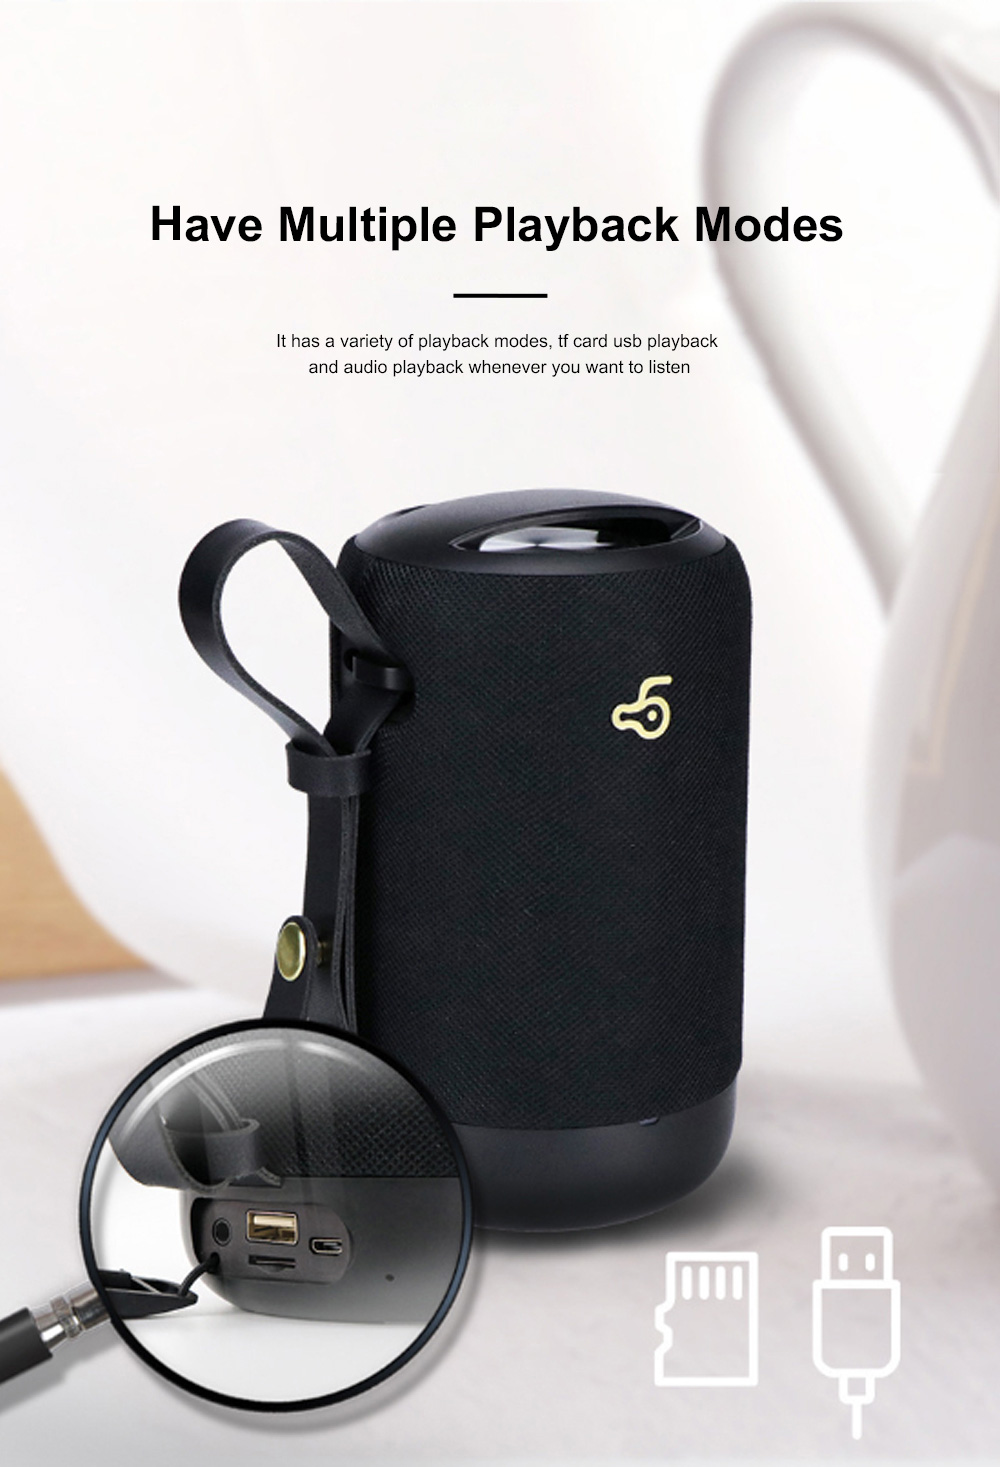 New Design Outdoor Portable Wireless Mini Portable Bluetooth Speaker Stereo Support TF Card Usb Charge Radio Subwoofer With Shoulder Strap 7